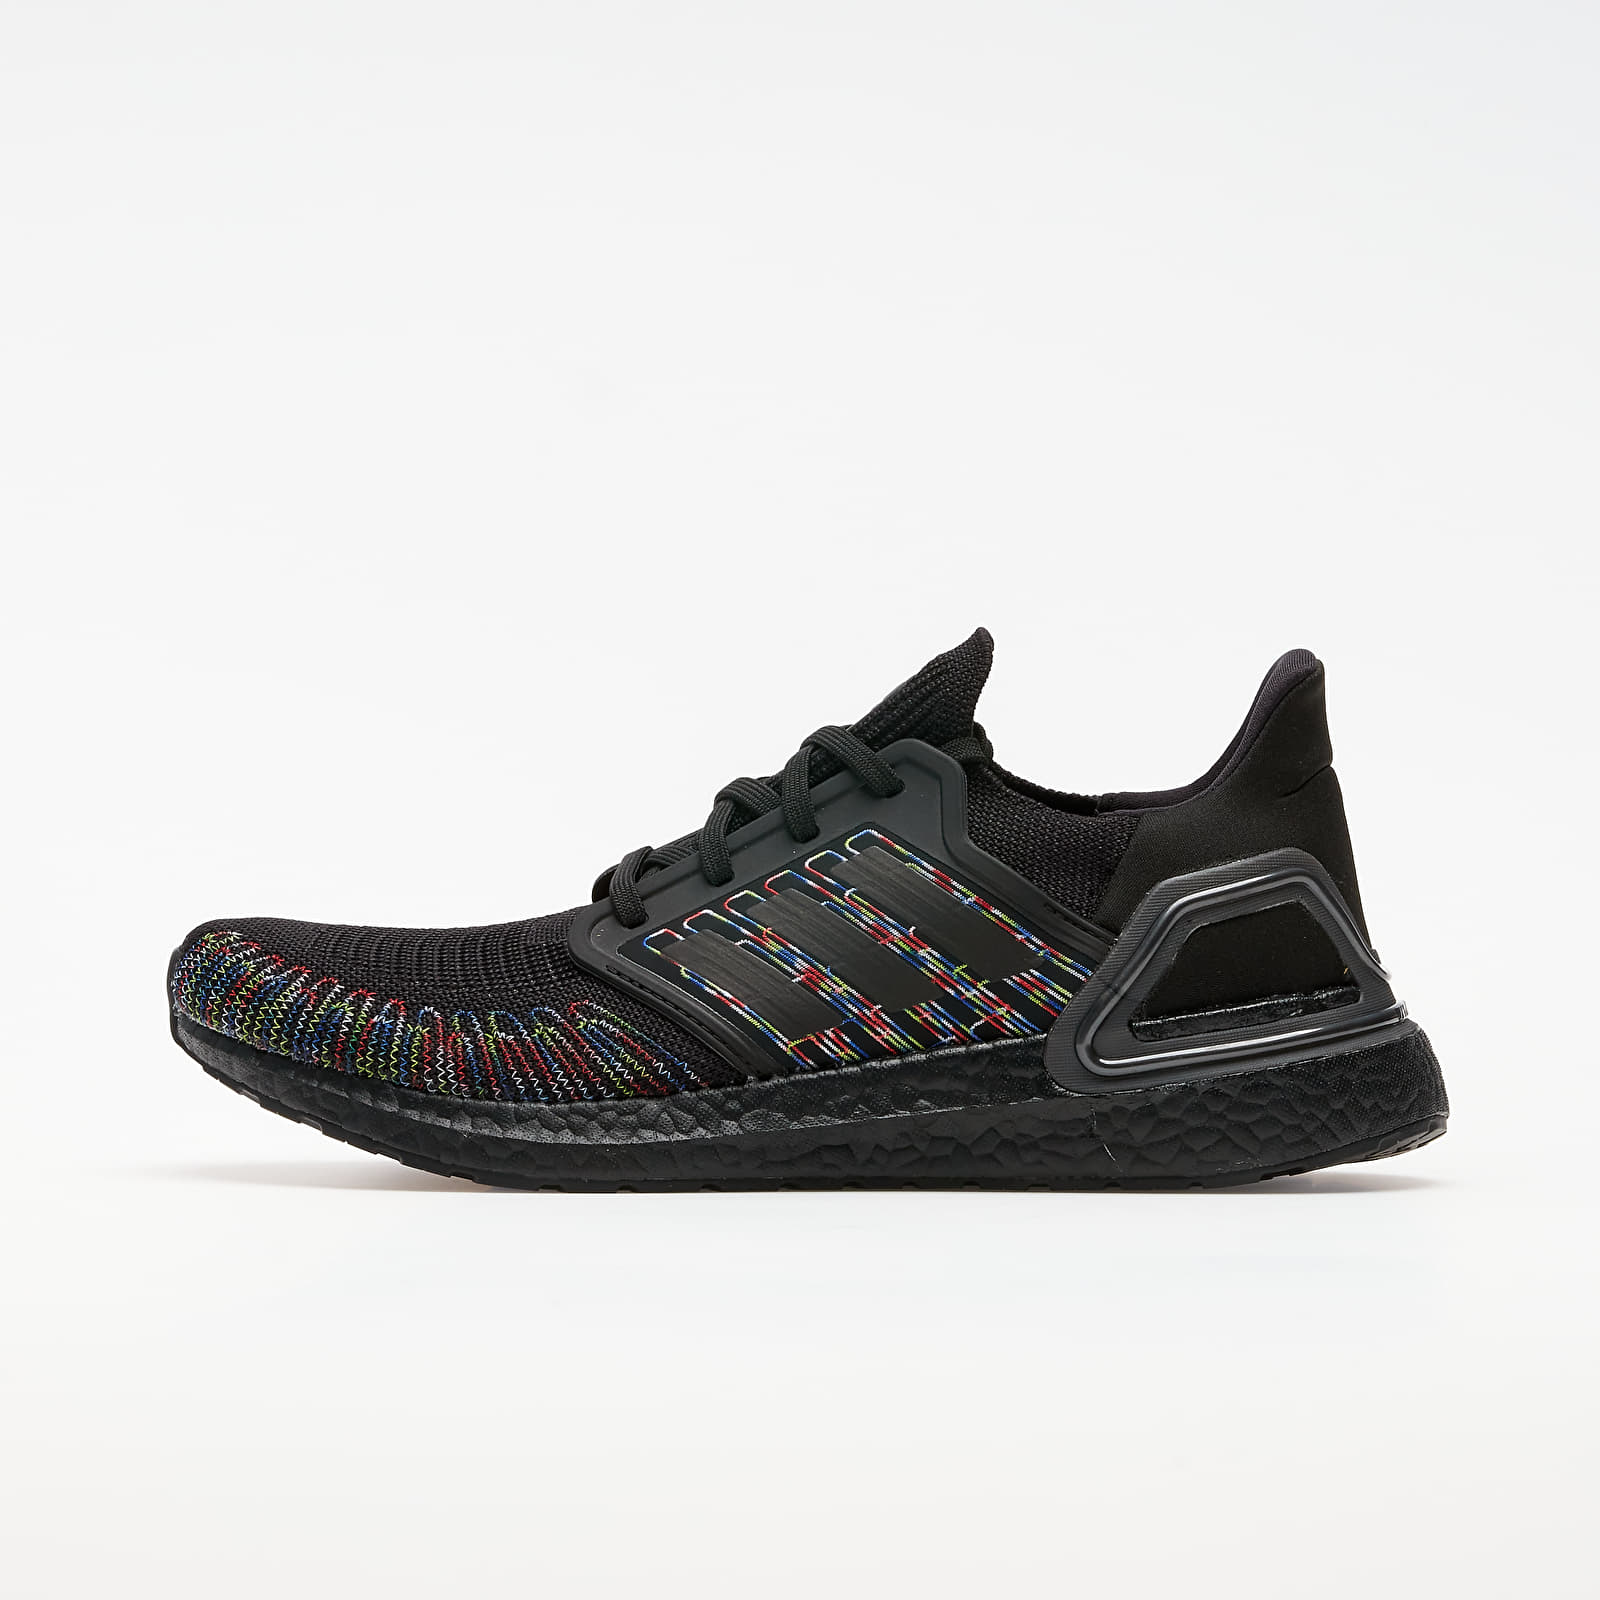 Men's shoes adidas UltraBOOST 20 Core Black/ Core Black/ Siggnr